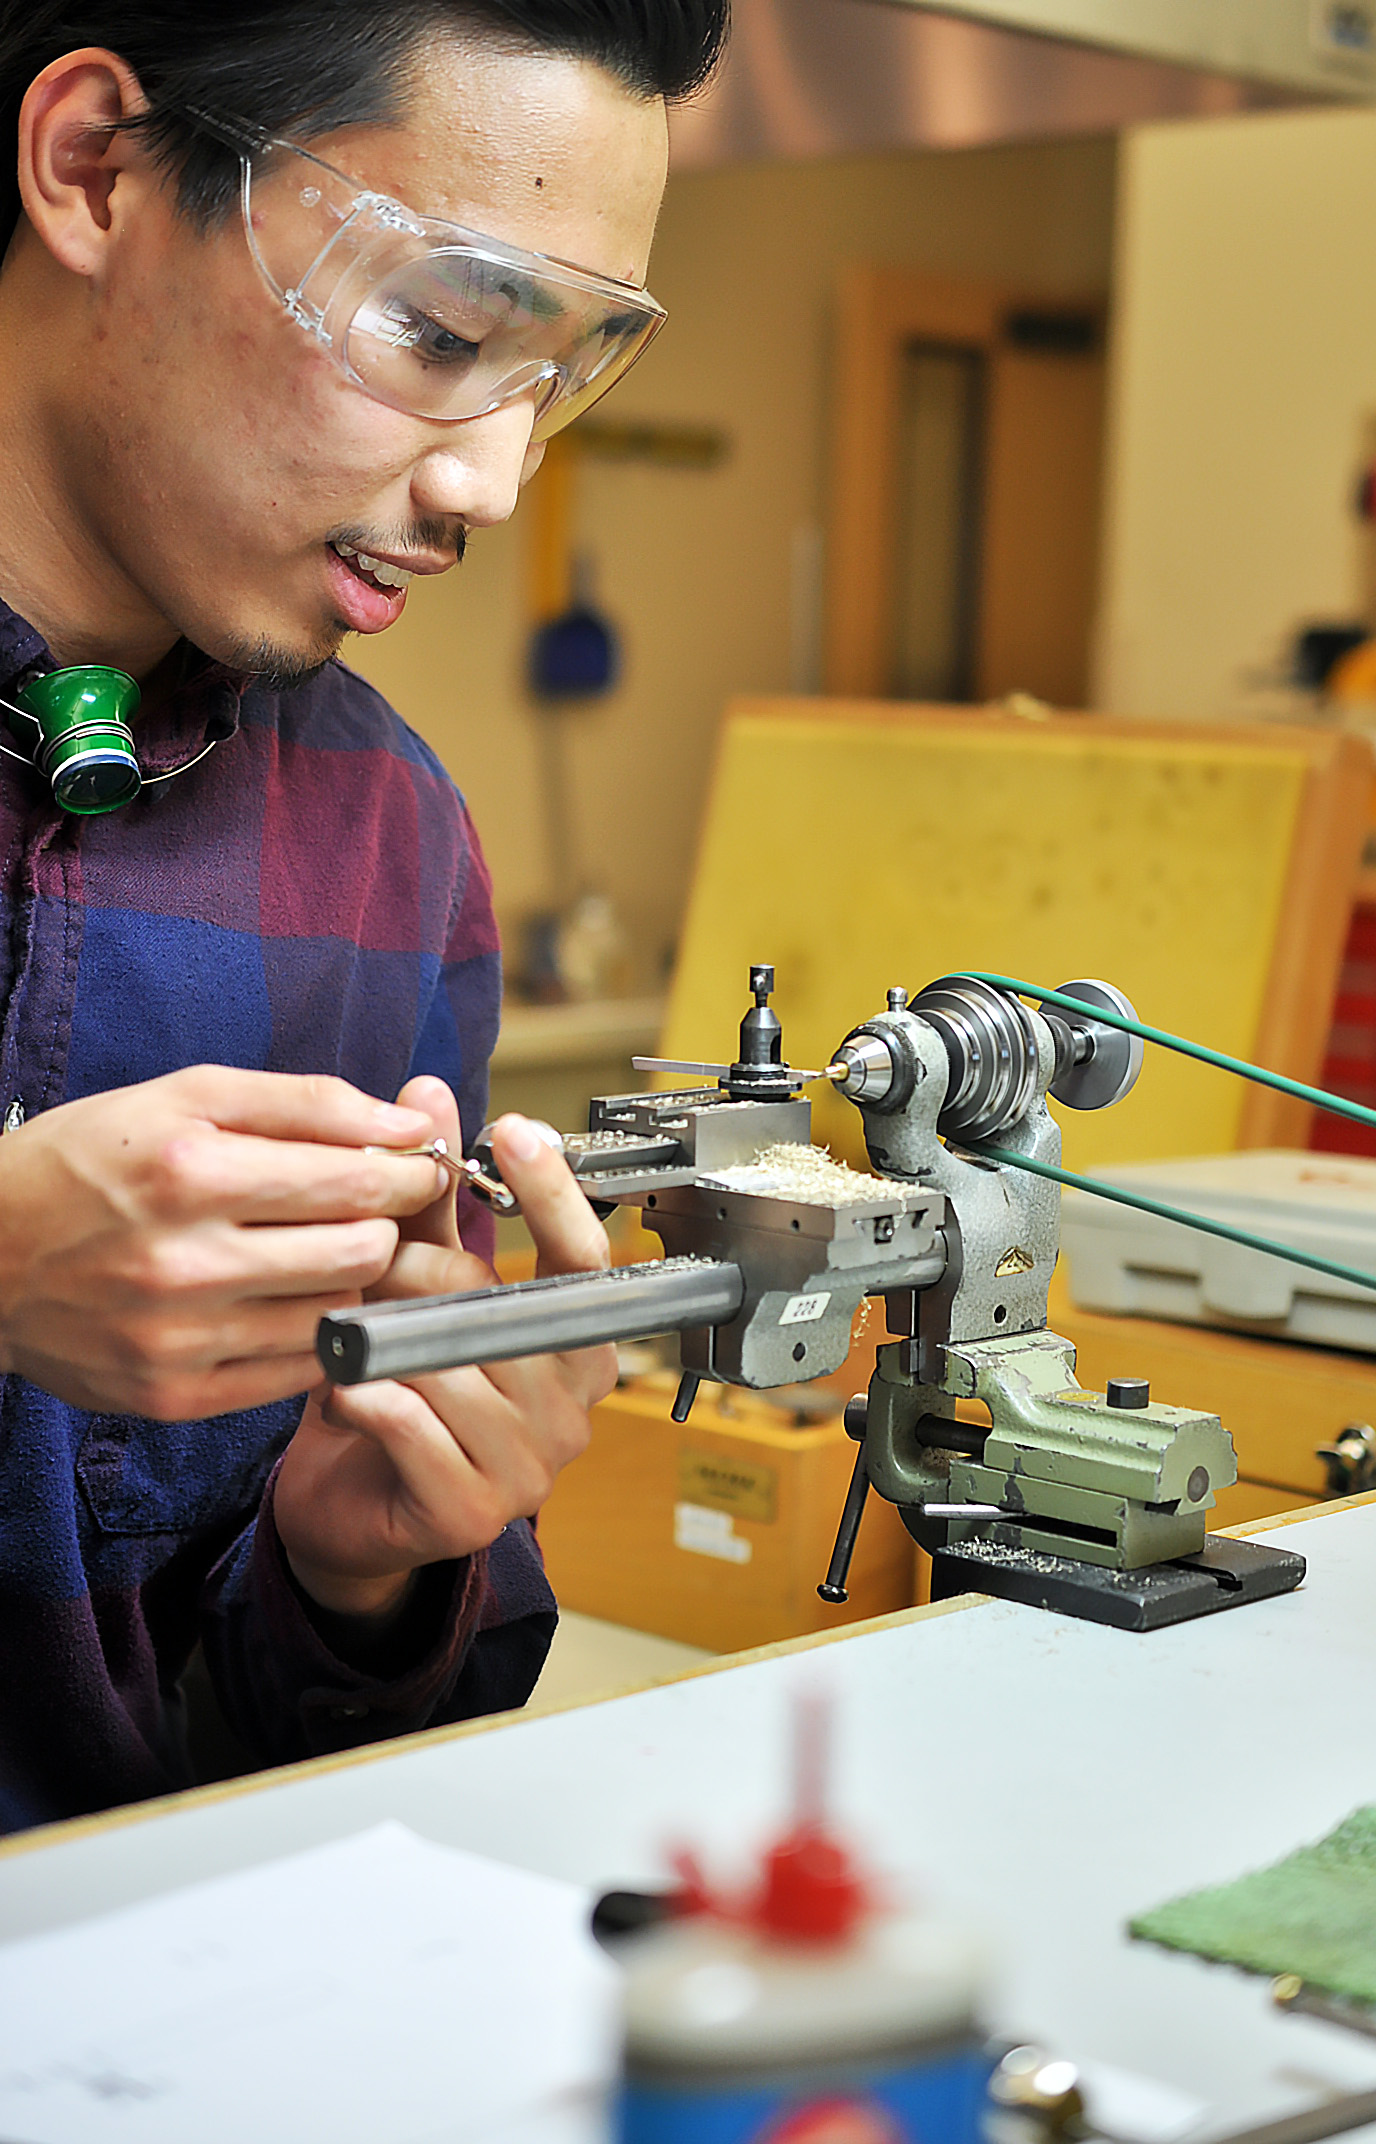 Max, a second year student, visits our side of the class to turn his handmade etachron tool on a lathe.